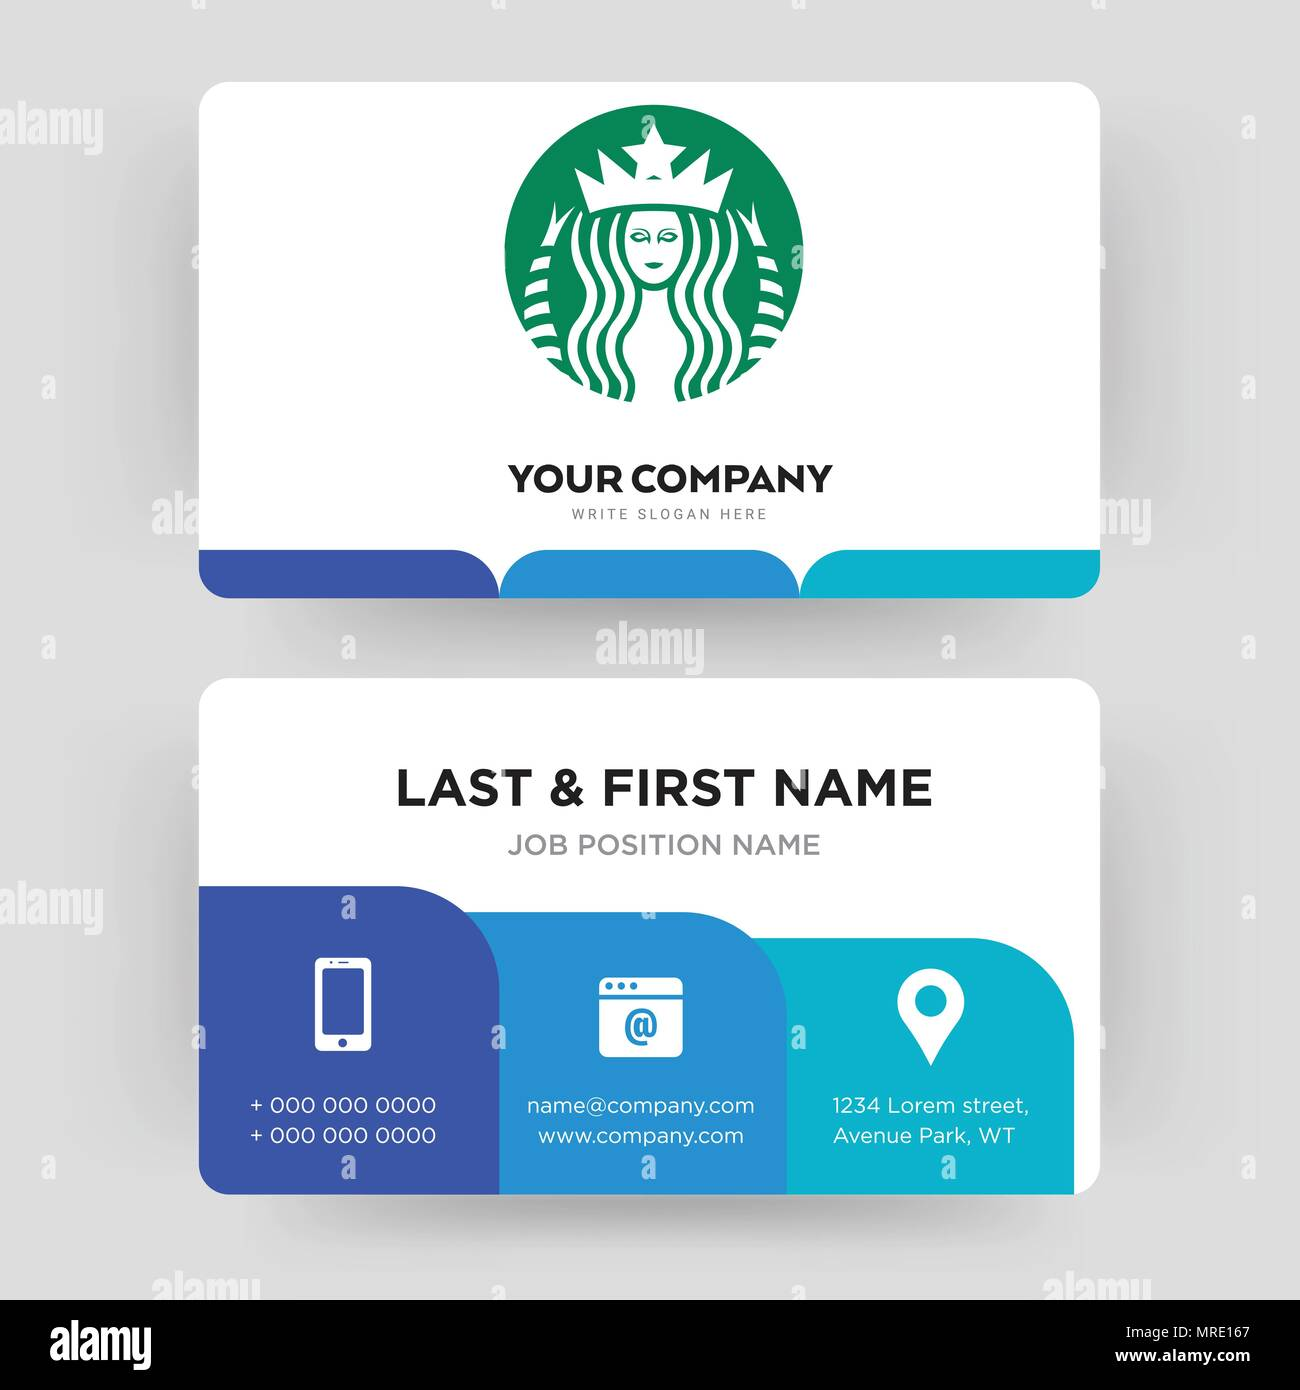 Starbucks business card design template visiting for your company starbucks business card design template visiting for your company modern creative and clean identity card vector colourmoves